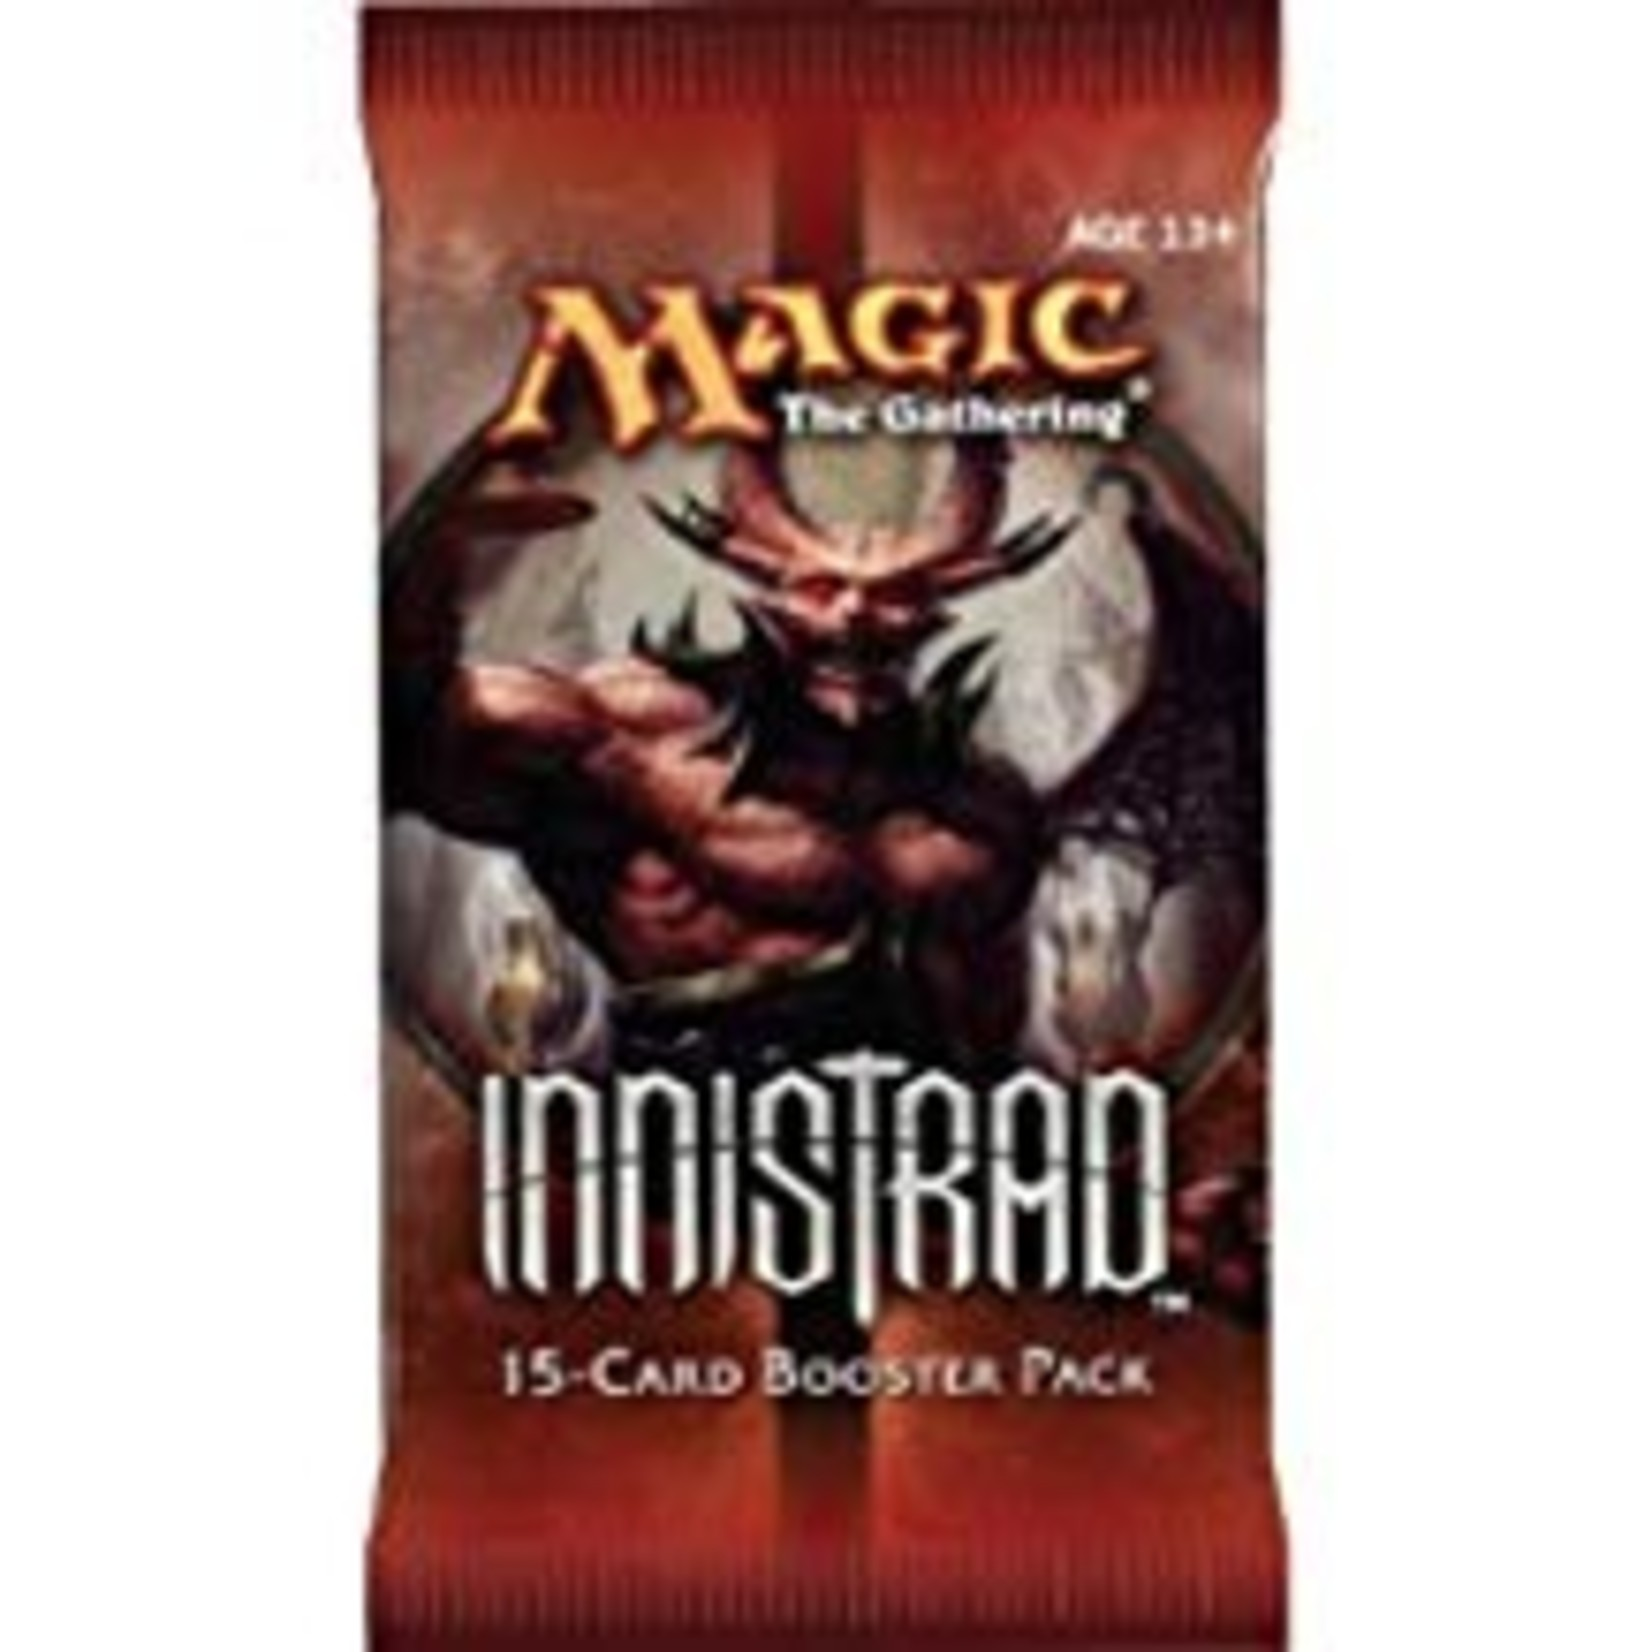 Wizards of the Coast Magic the Gathering: Innistrad Booster Pack